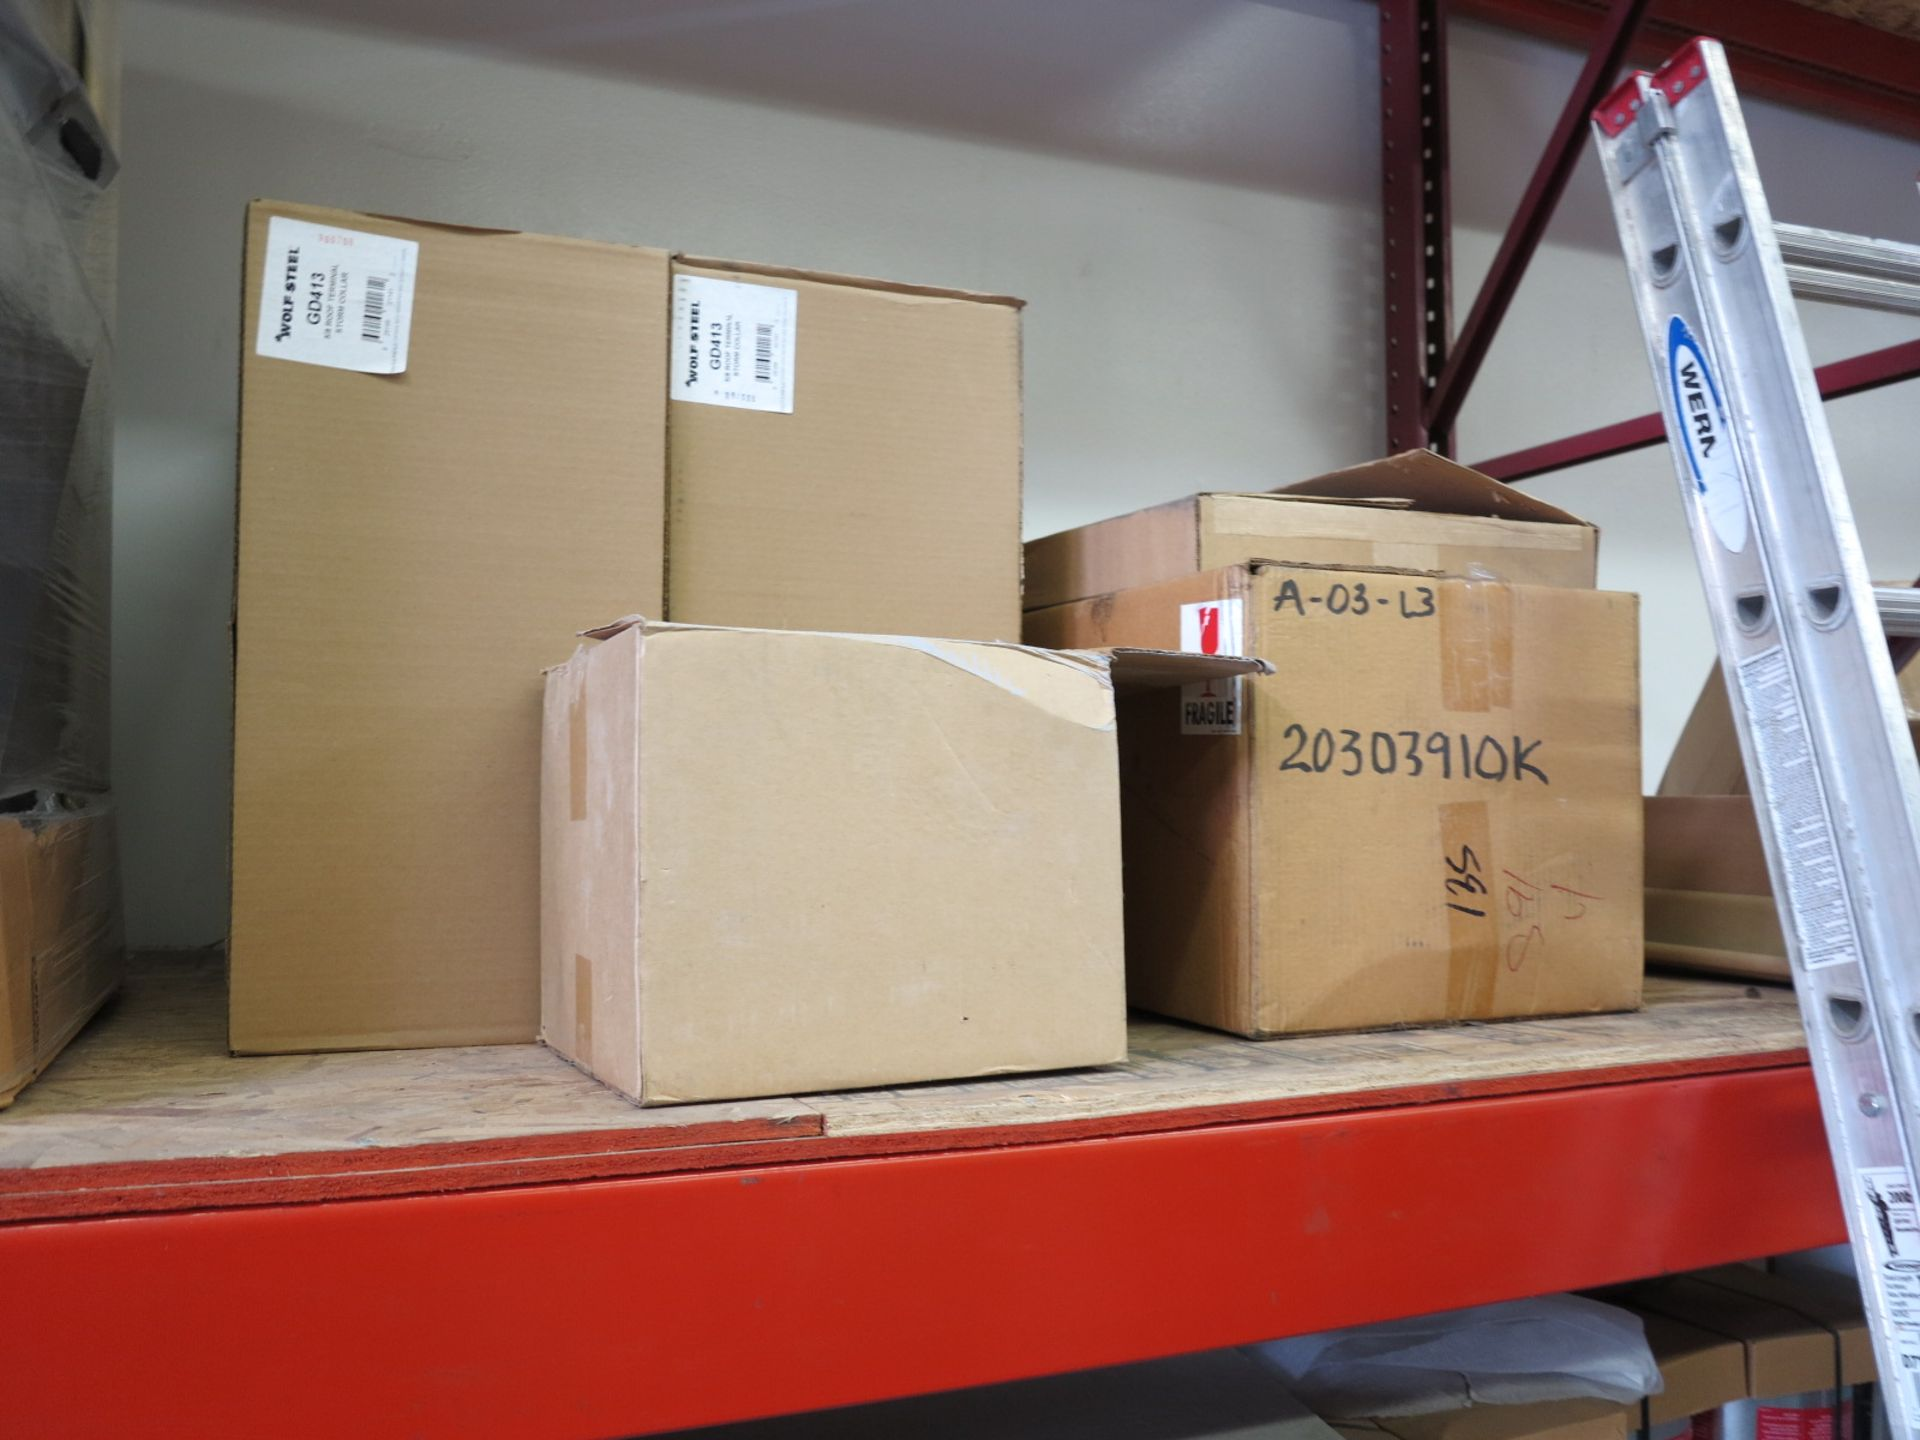 LOT - CONTENTS OF (3) SECTIONS OF PALLET RACKING, NOT INCLUDING TAGGED ITEMS - Image 4 of 9